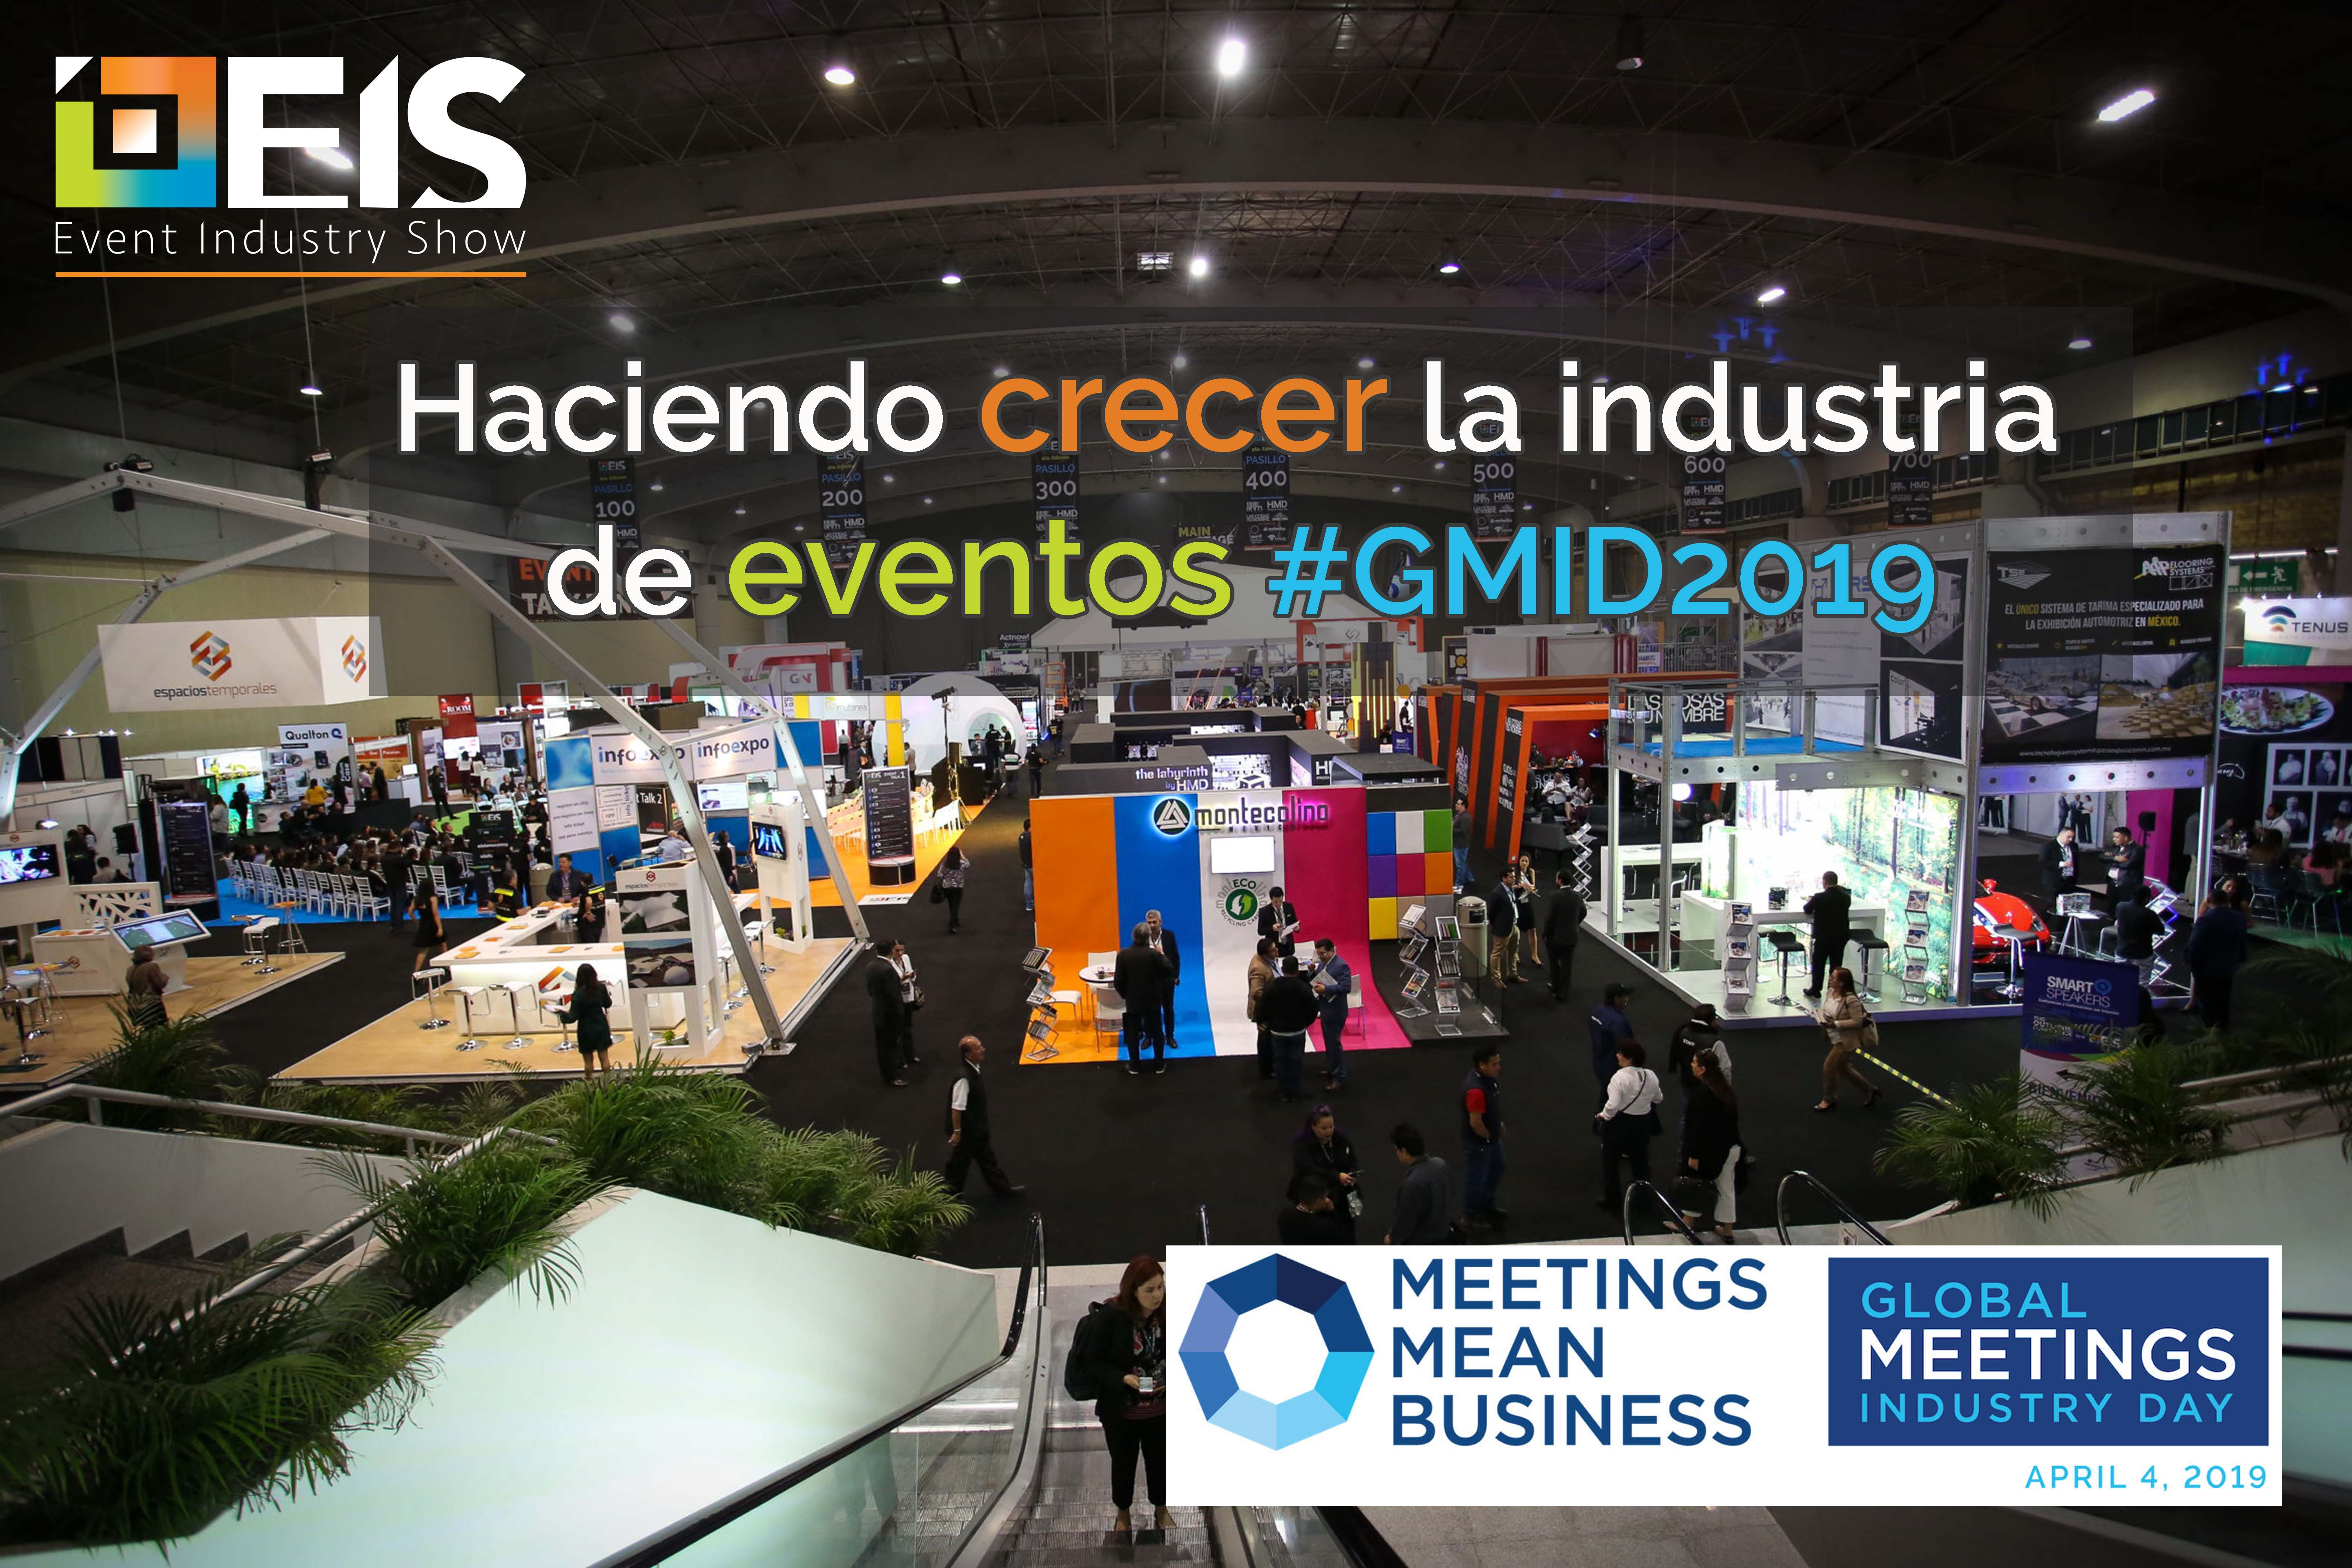 Global Meeting Industry Day 2019